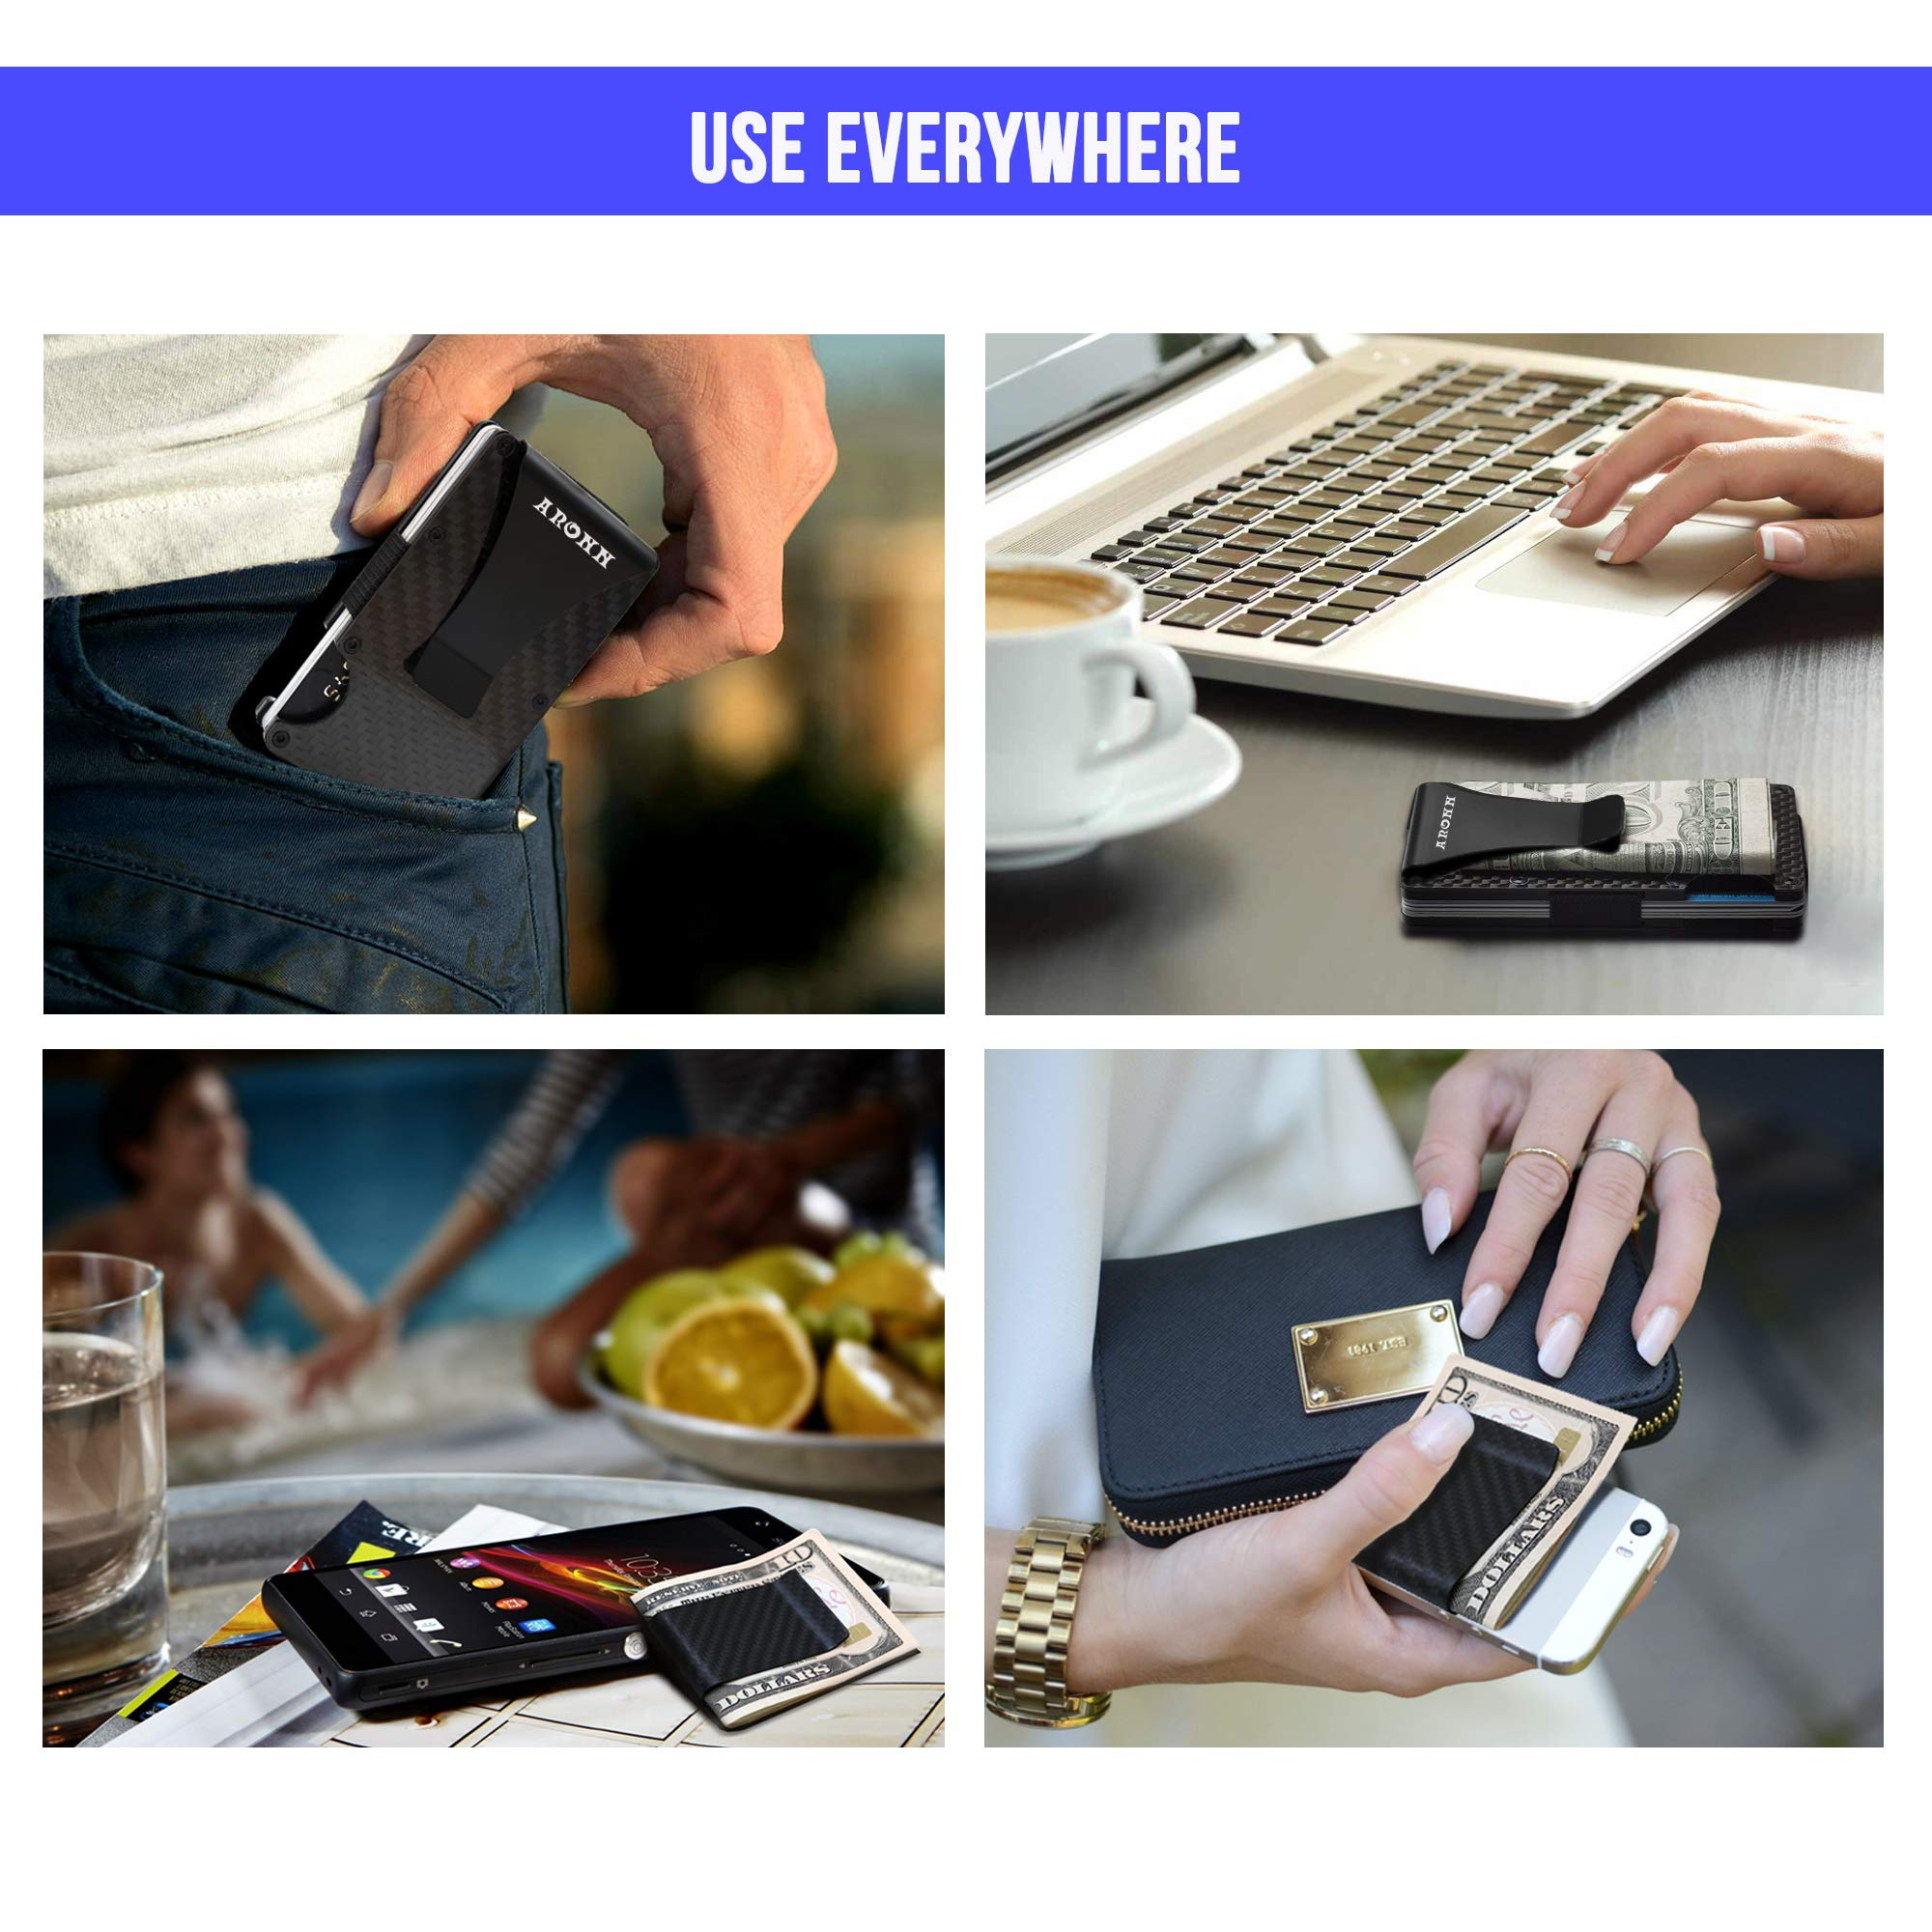 Minimalist Carbon Fiber Wallet Money Clip - RFID Blocking Credit Card Holder for Men and Woman - Metal Slim Wallet - Fits in Front and Back Pocket - Gift Box Included